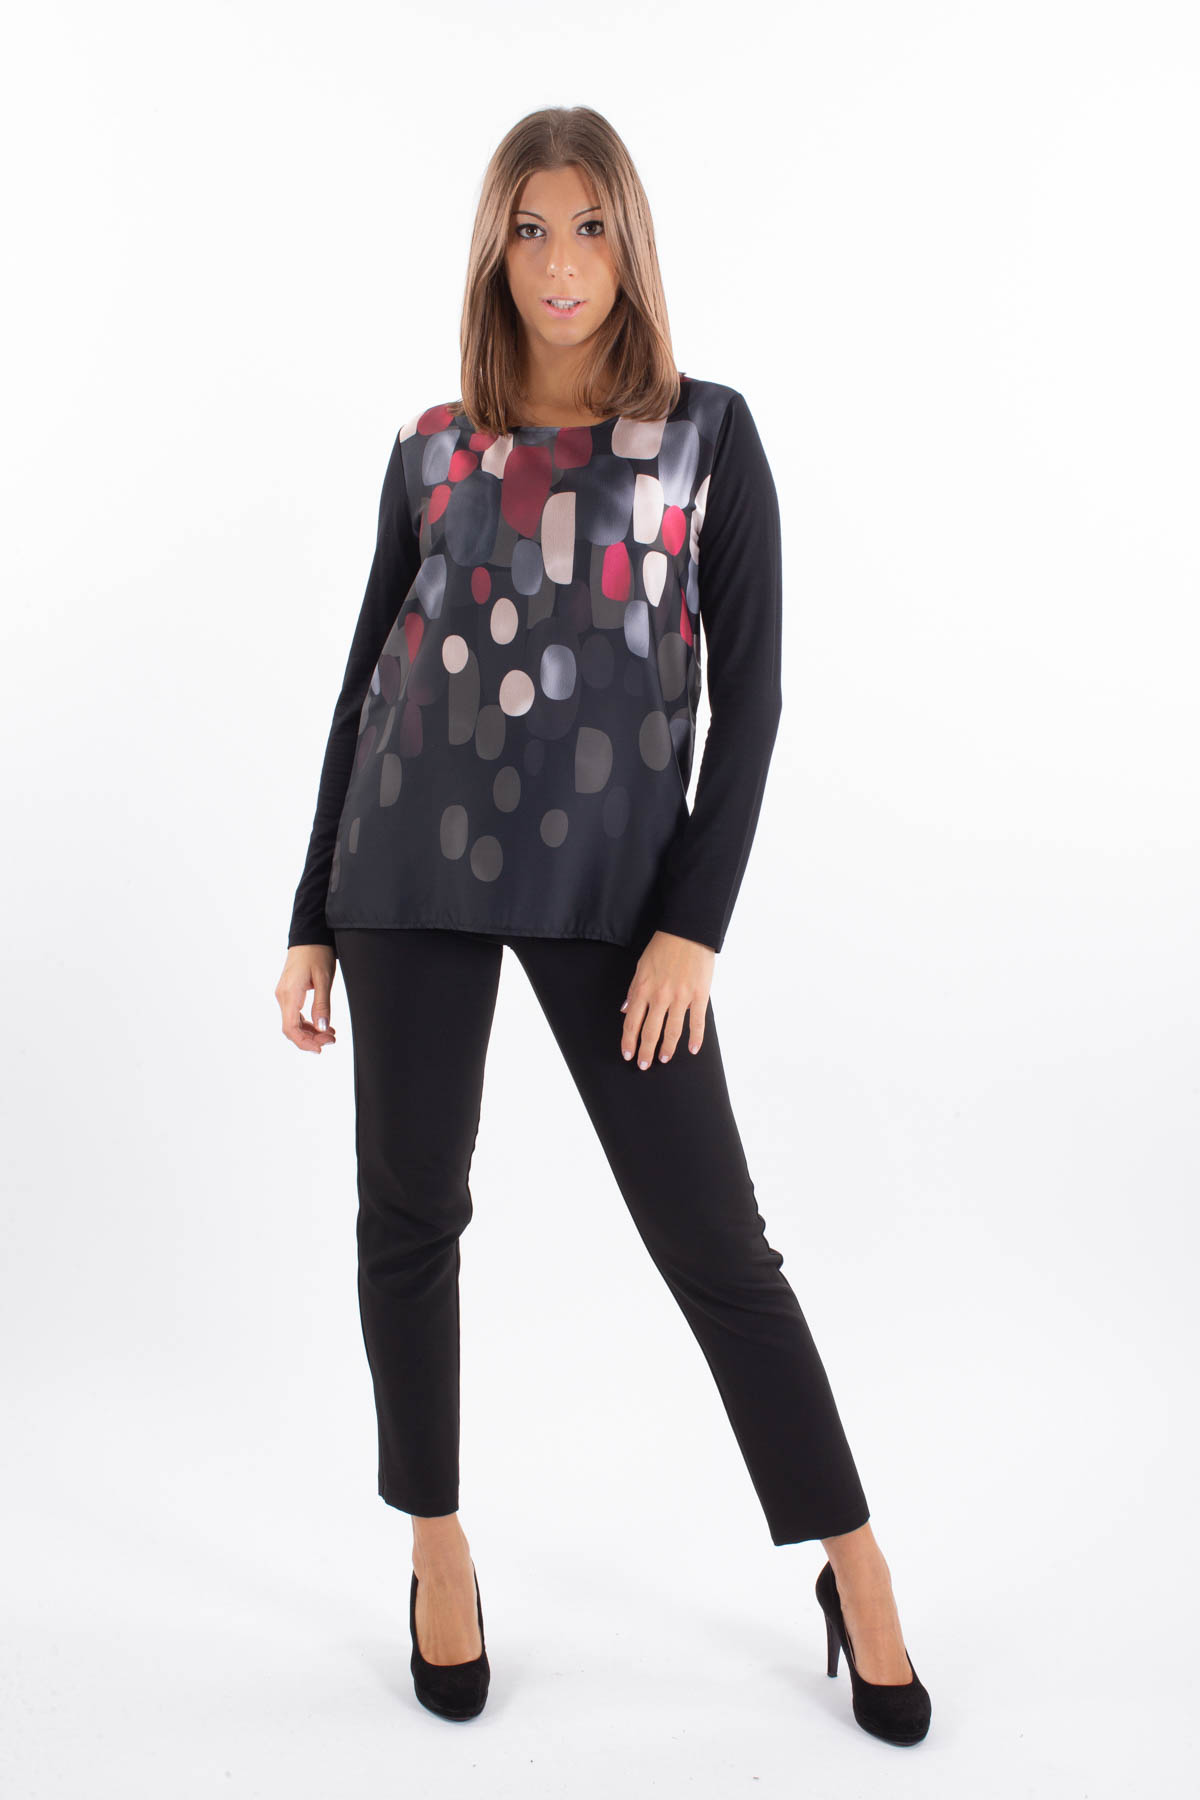 VISCOSE BLOUSE PATTERNED PRINT for women - ONLY - Paquito Pronto Moda Shop Online